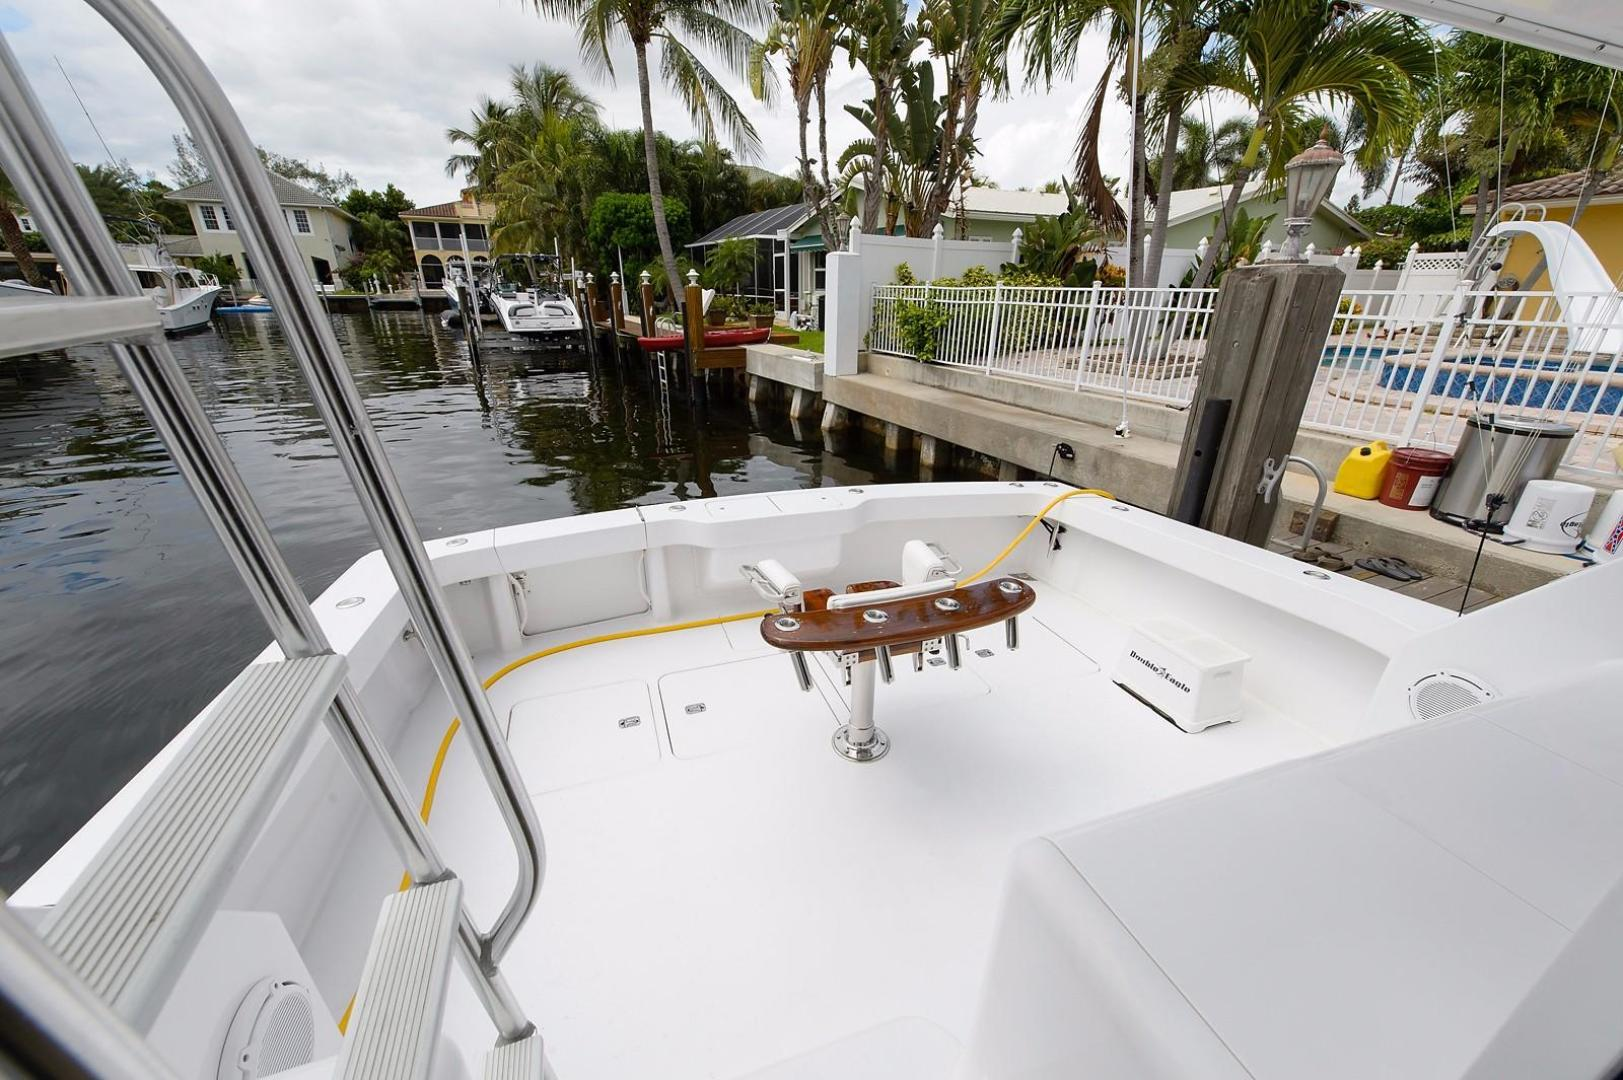 Viking-52 Convertible 2002-Double Eagle Boca Raton-Florida-United States-458710 | Thumbnail